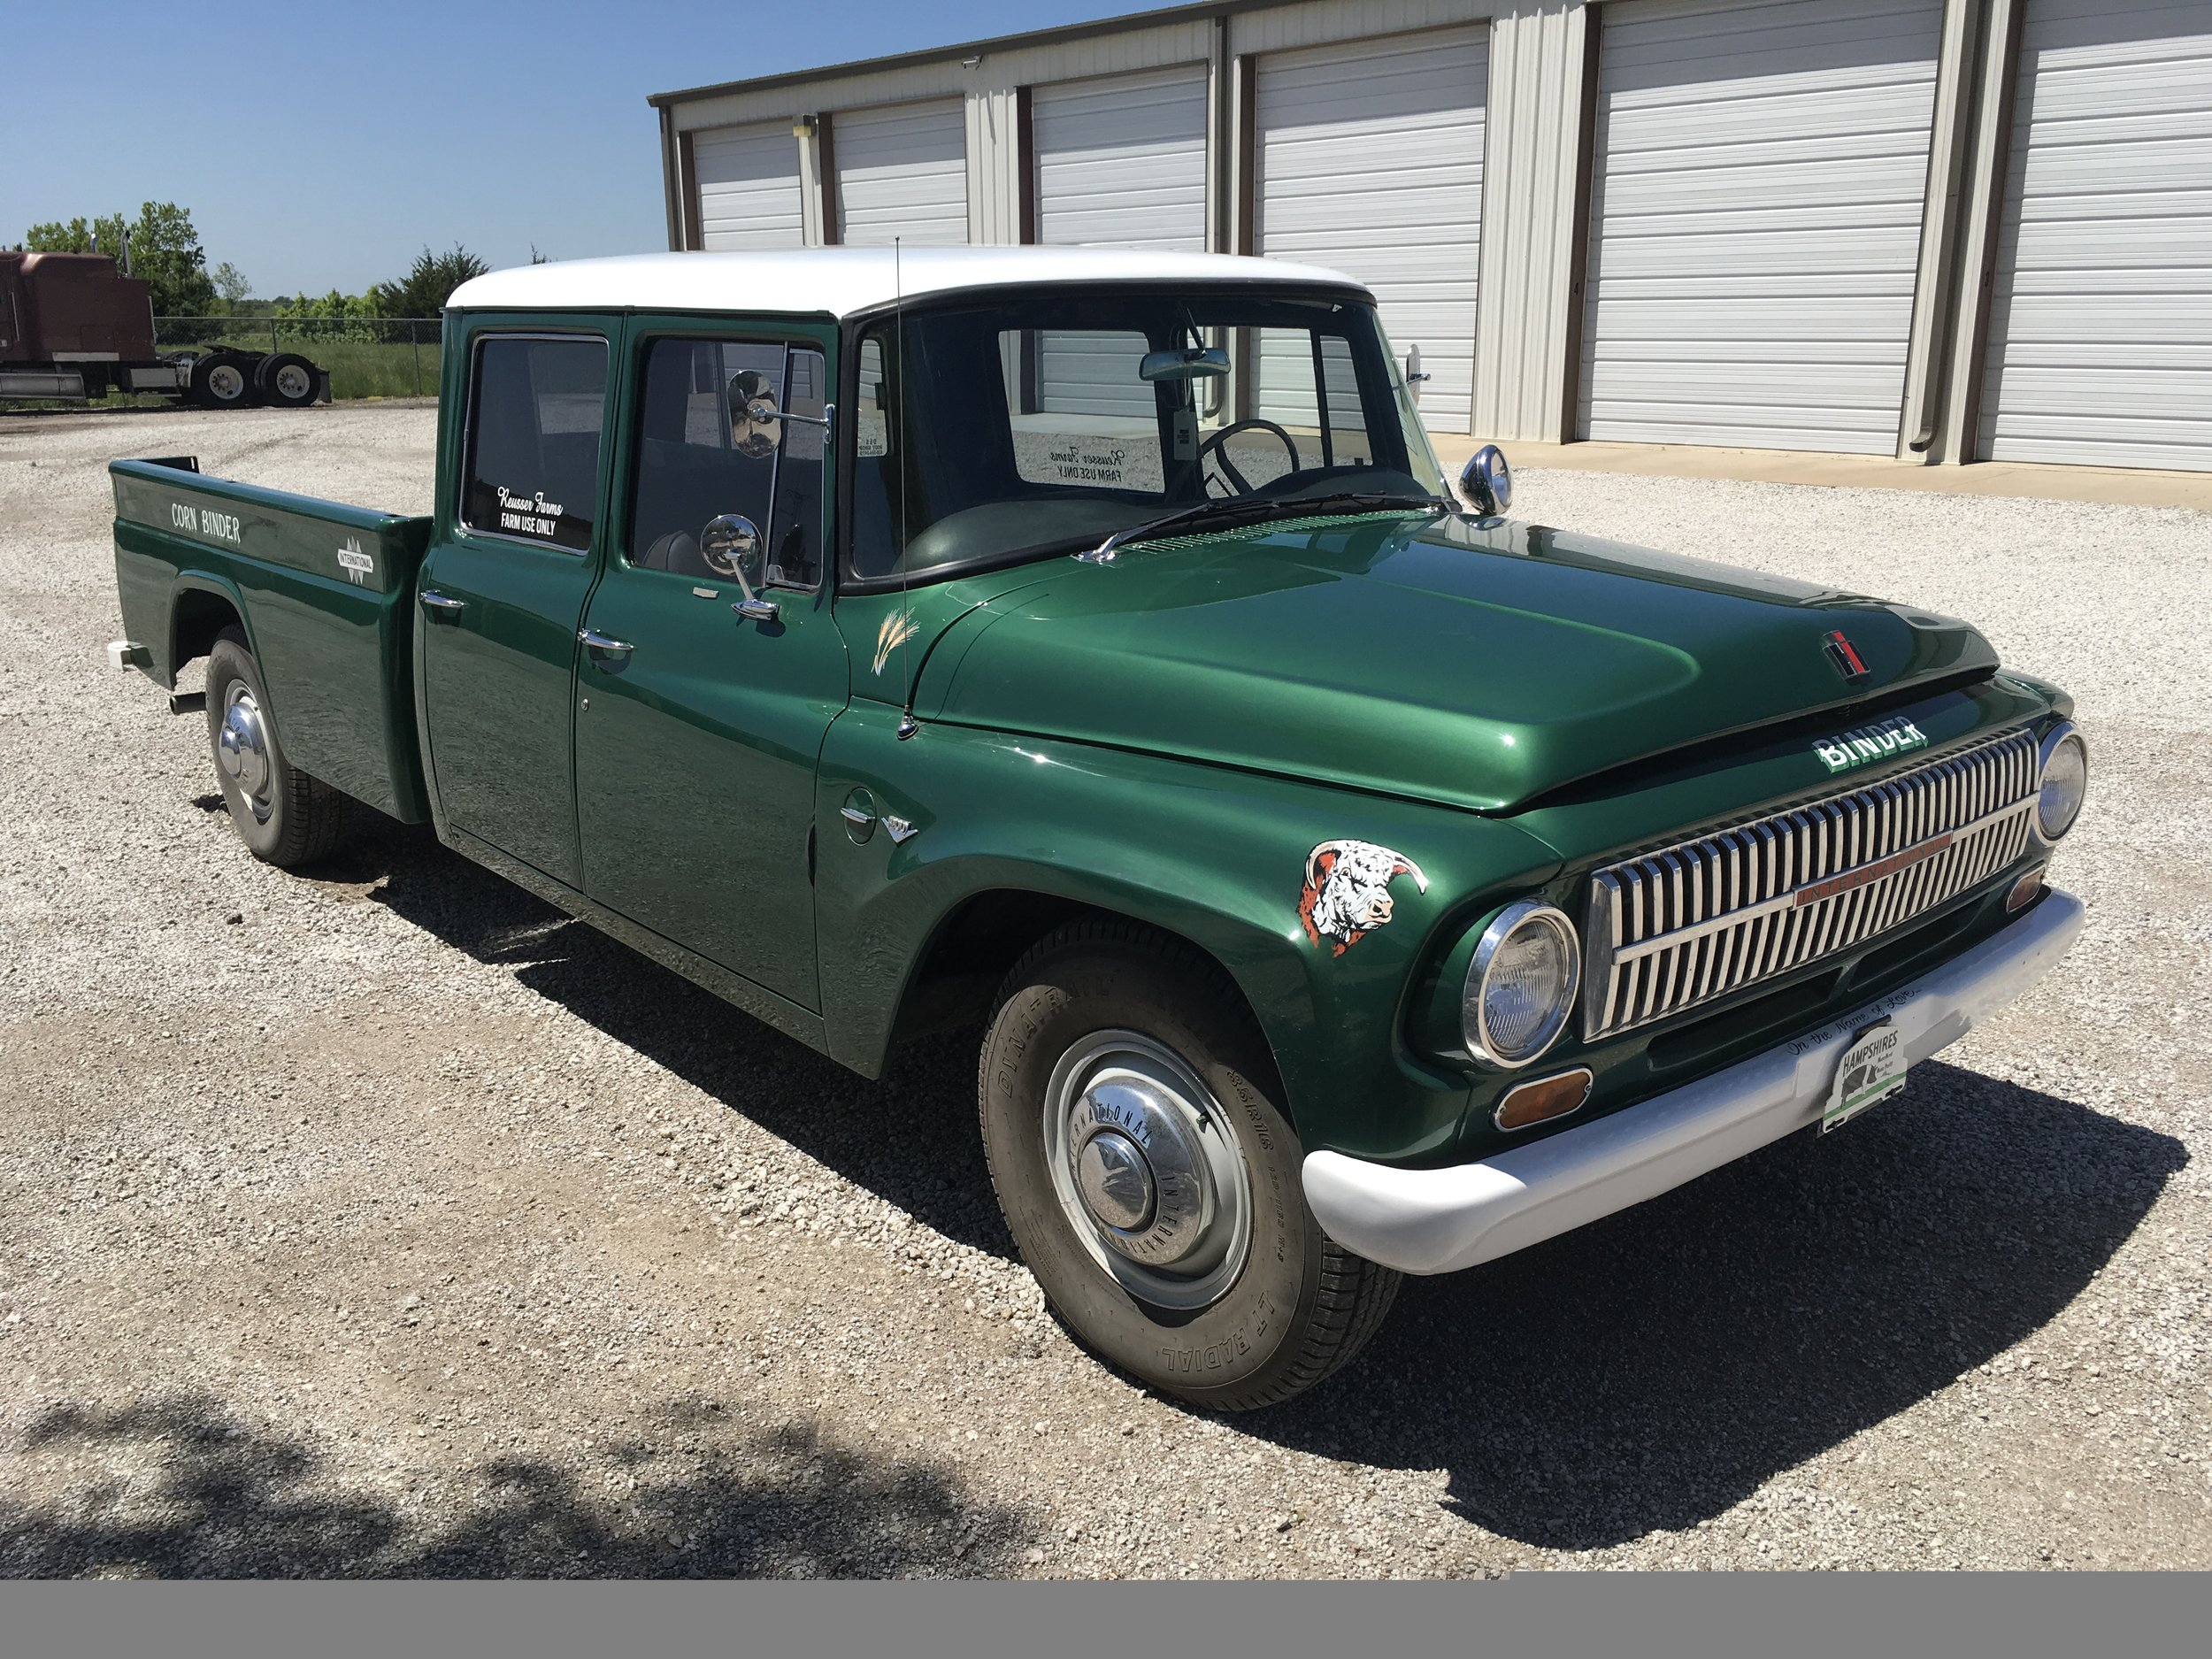 1966 International Travelette 1200 Crew Cab (www.gravelRoads.com)